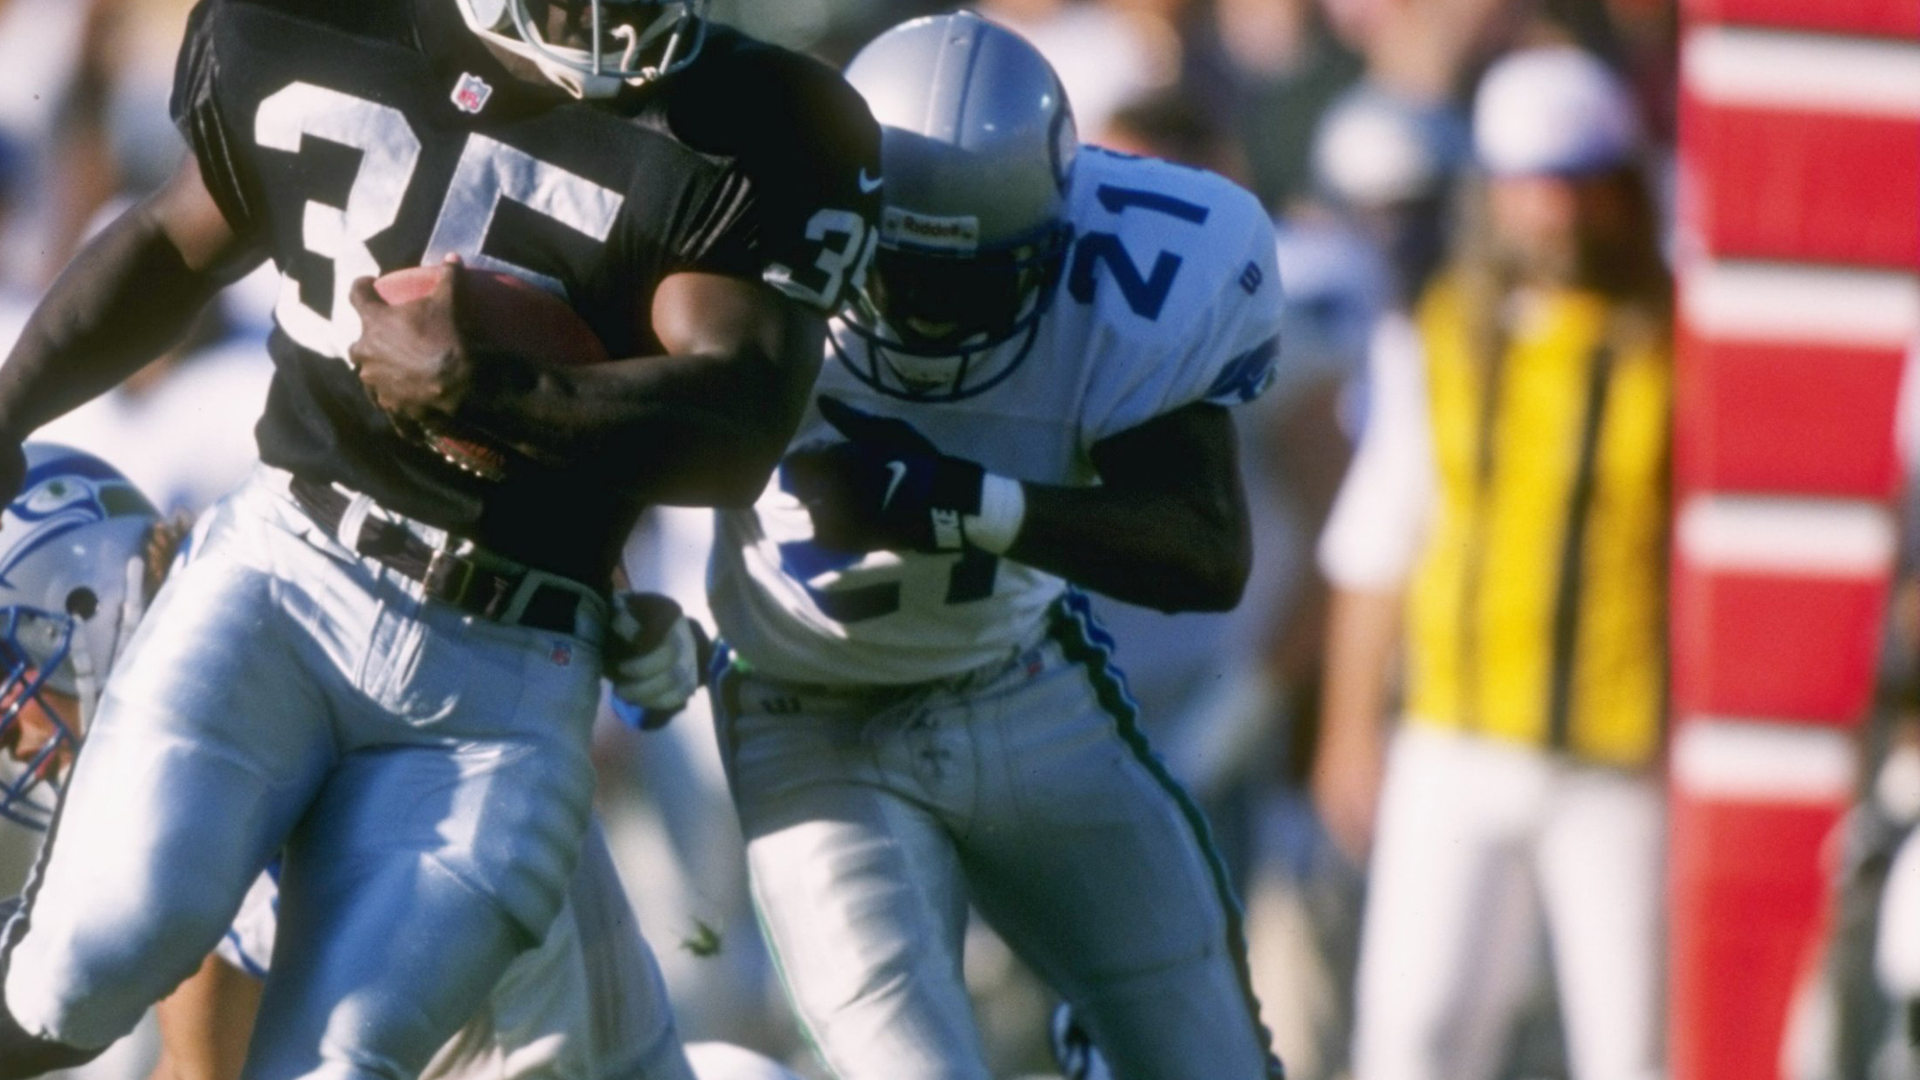 T.J. Cunningham #21 of the Seattle Seahawks is seen playing in a game against the Oakland Raiders in this undated file photo. (Credit: Getty Images)